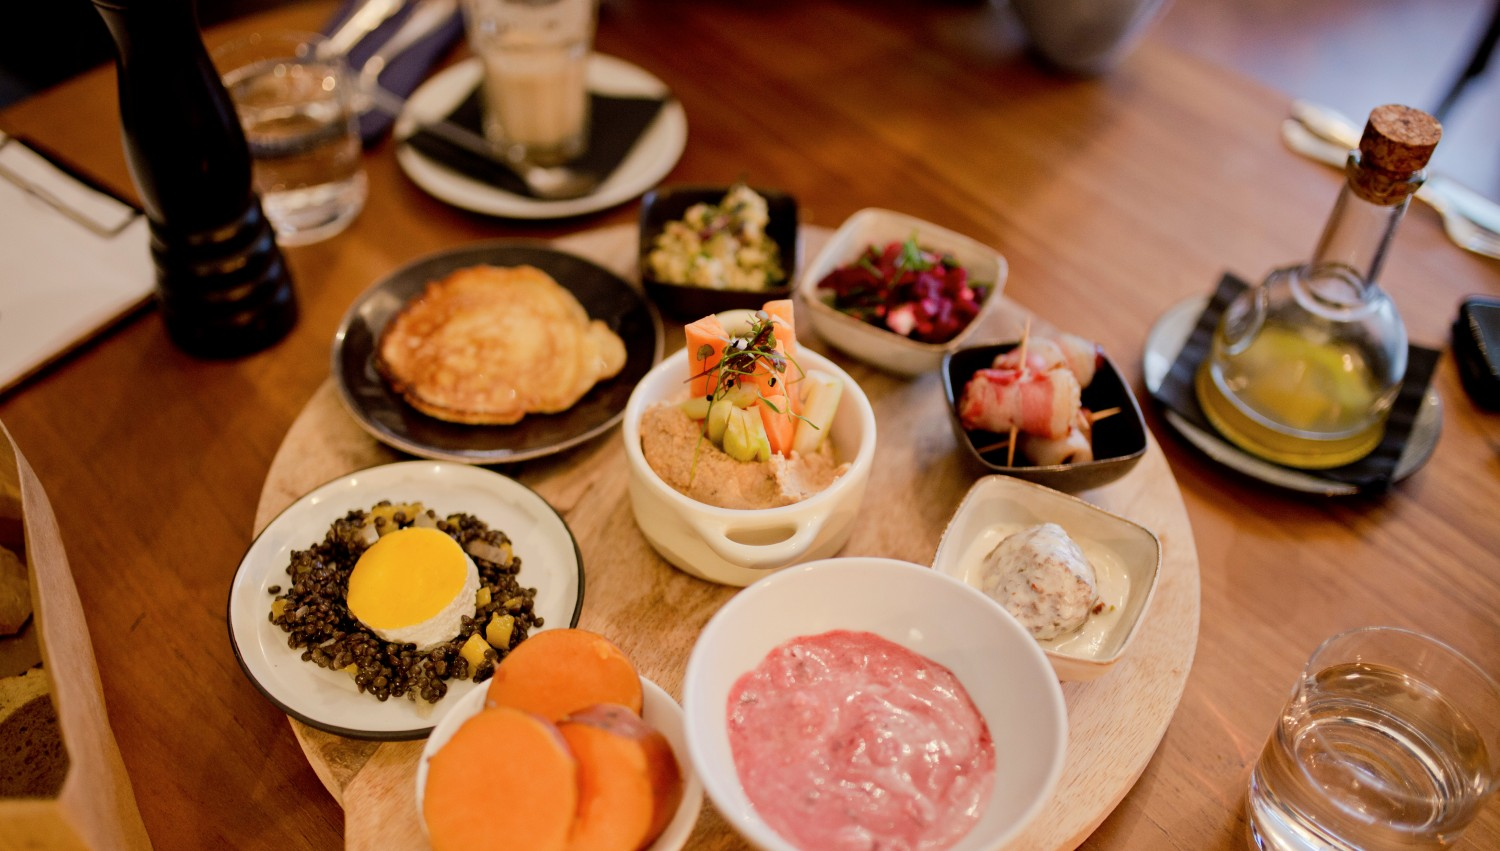 Breakfast in Berlin | Neumond <br><em>Brunch in Berlin</em>